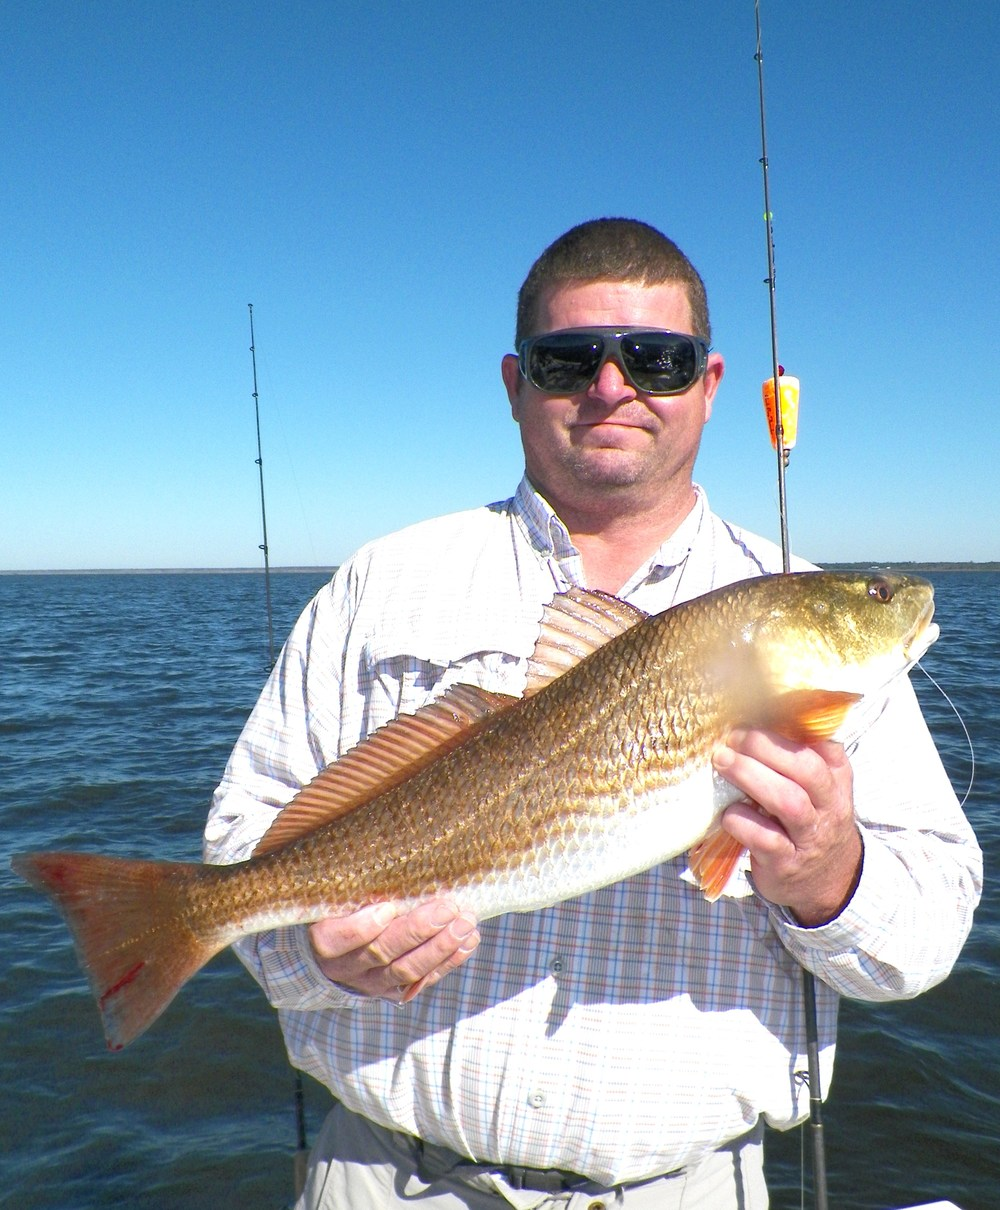 Lee Crowe of Bogart, Ga. with a 6.1 pound red caught Halloween 2014